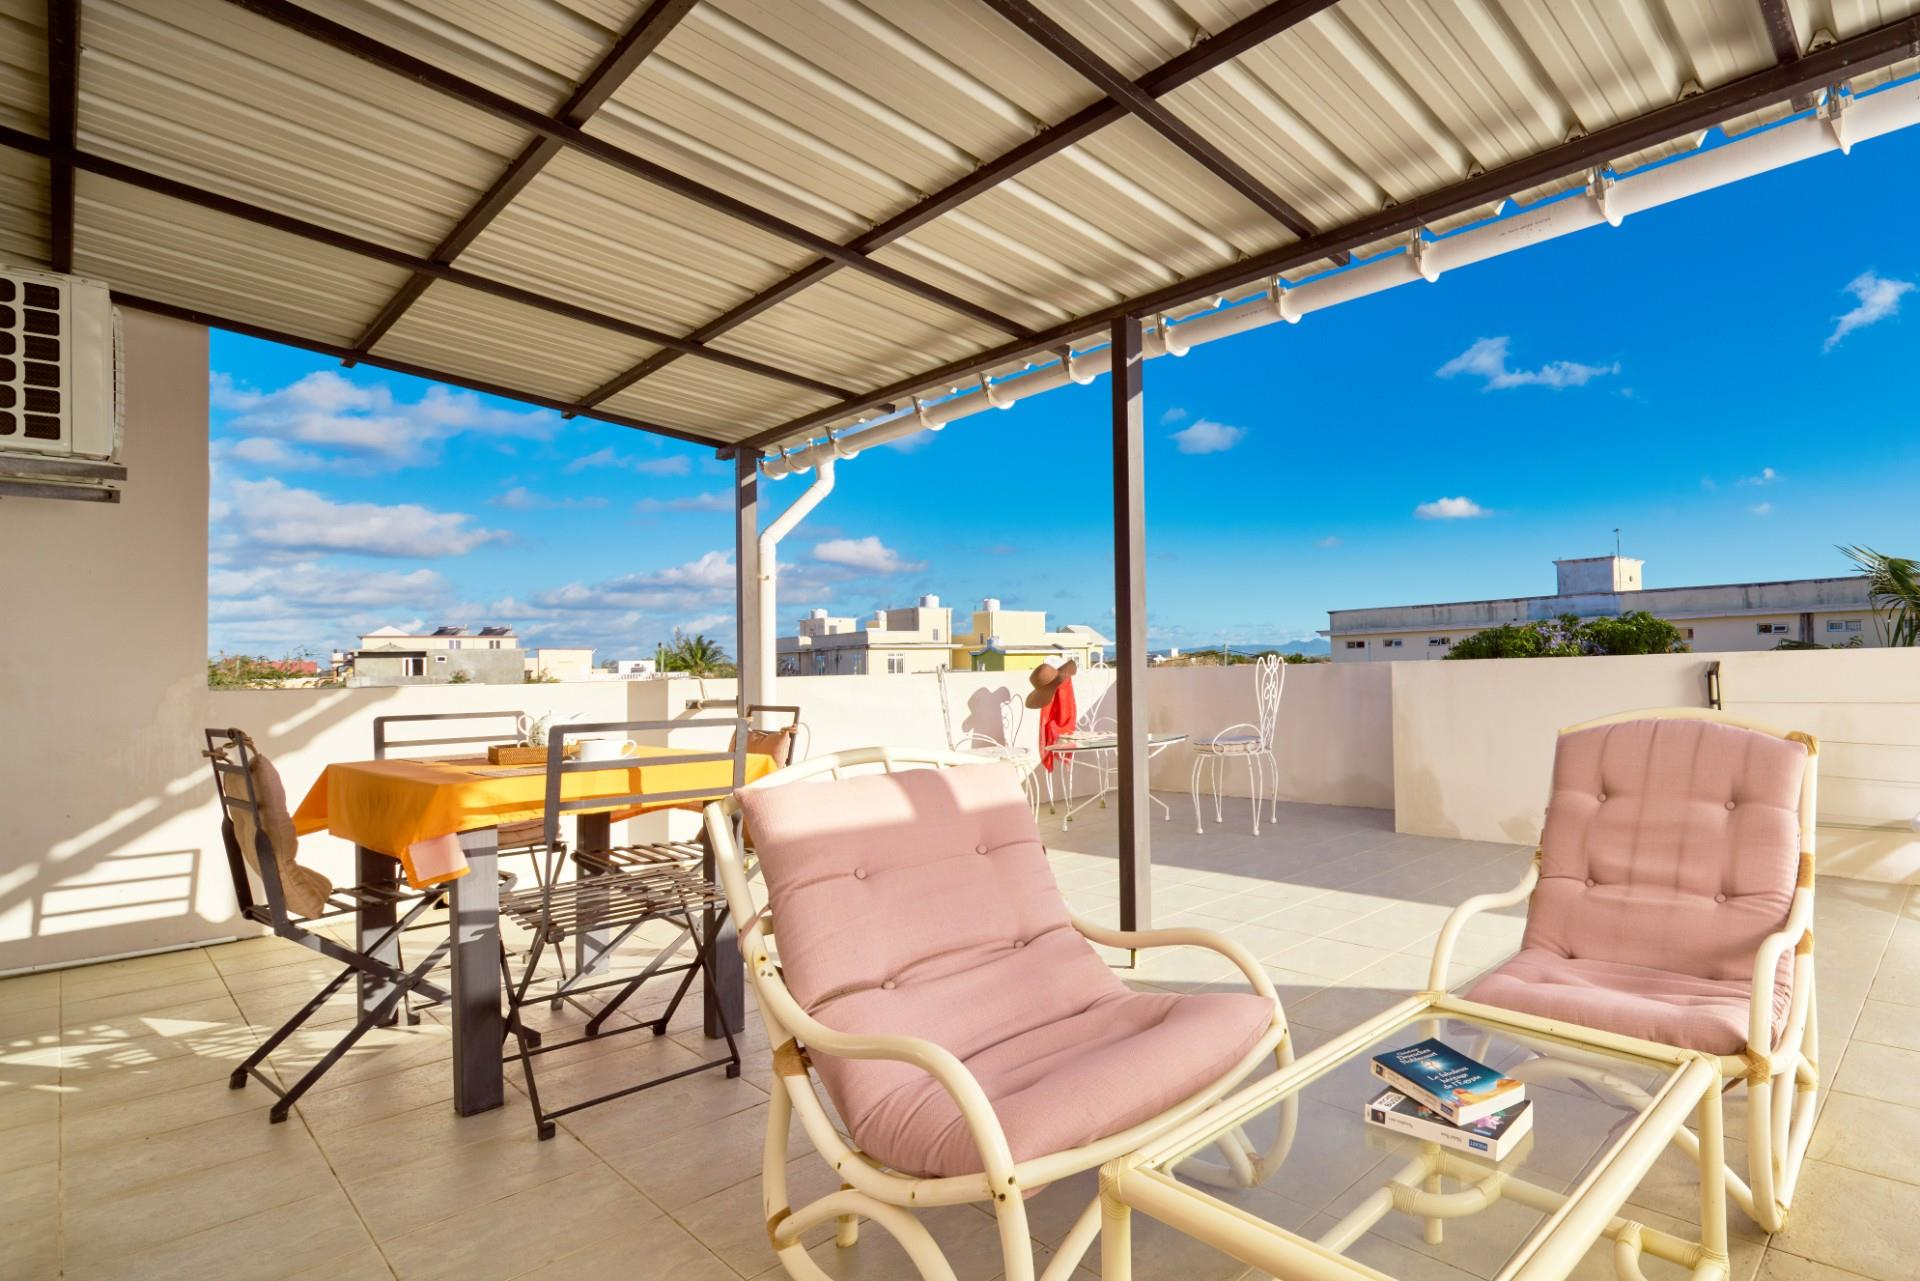 4 Bedroom Apartment / Flat For Sale in Pereybere